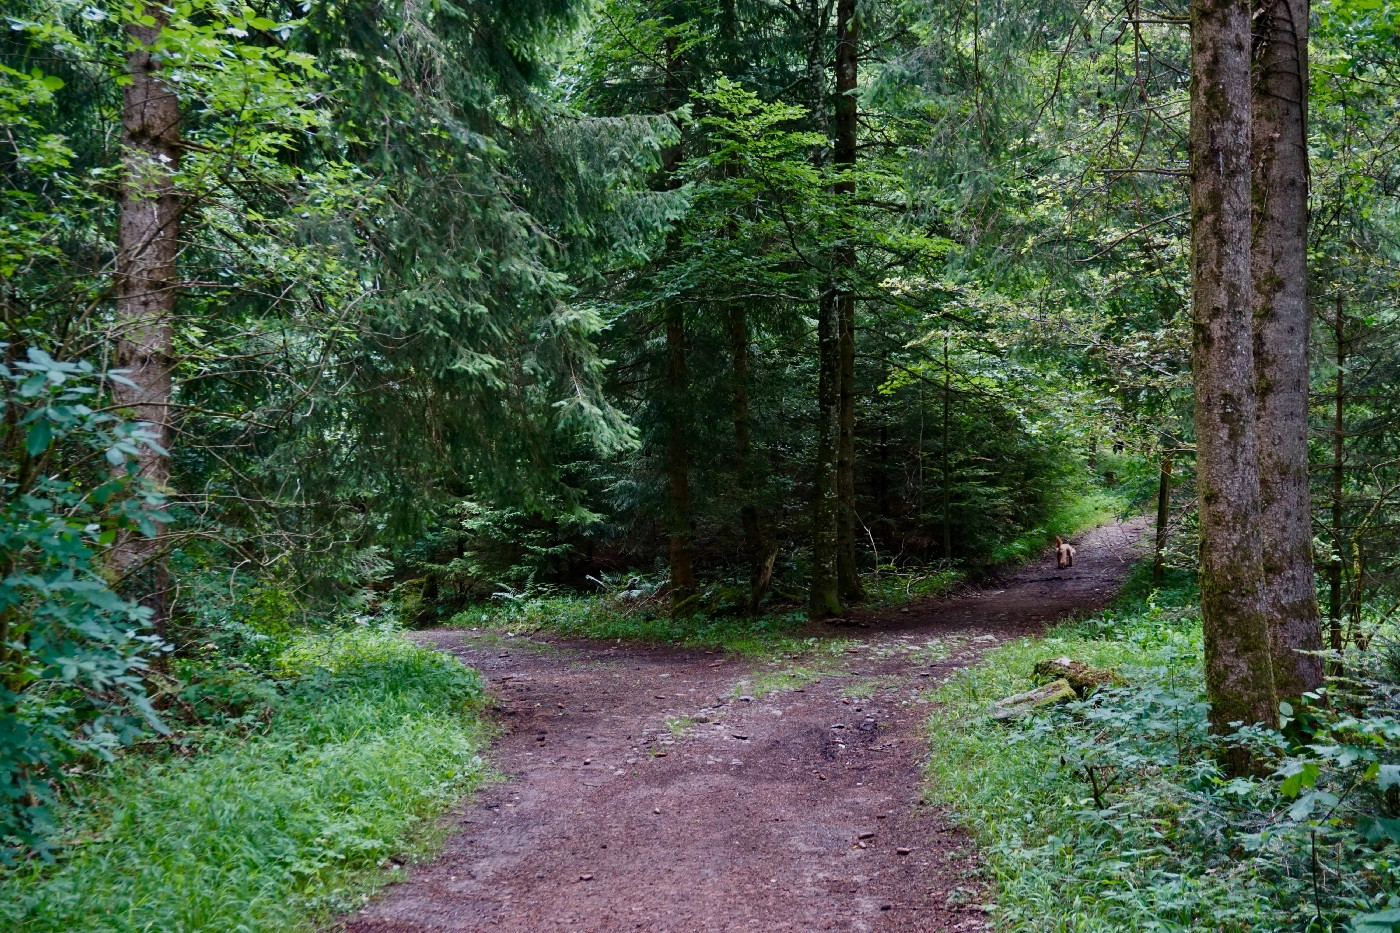 Two paths in the woods